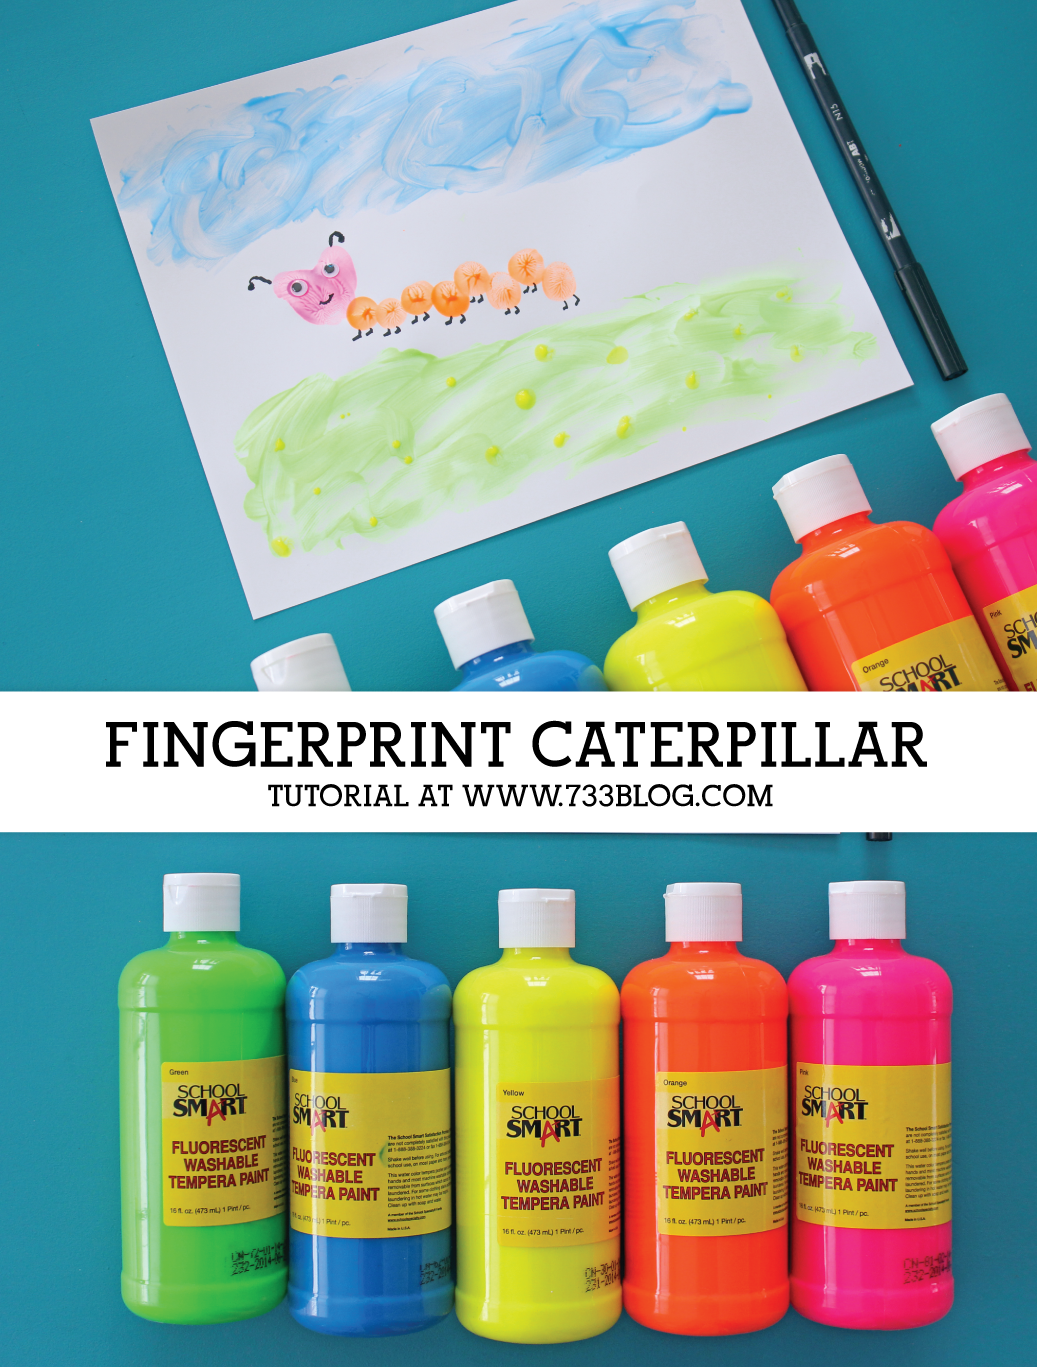 Fingerprint Caterpillar Kids Craft